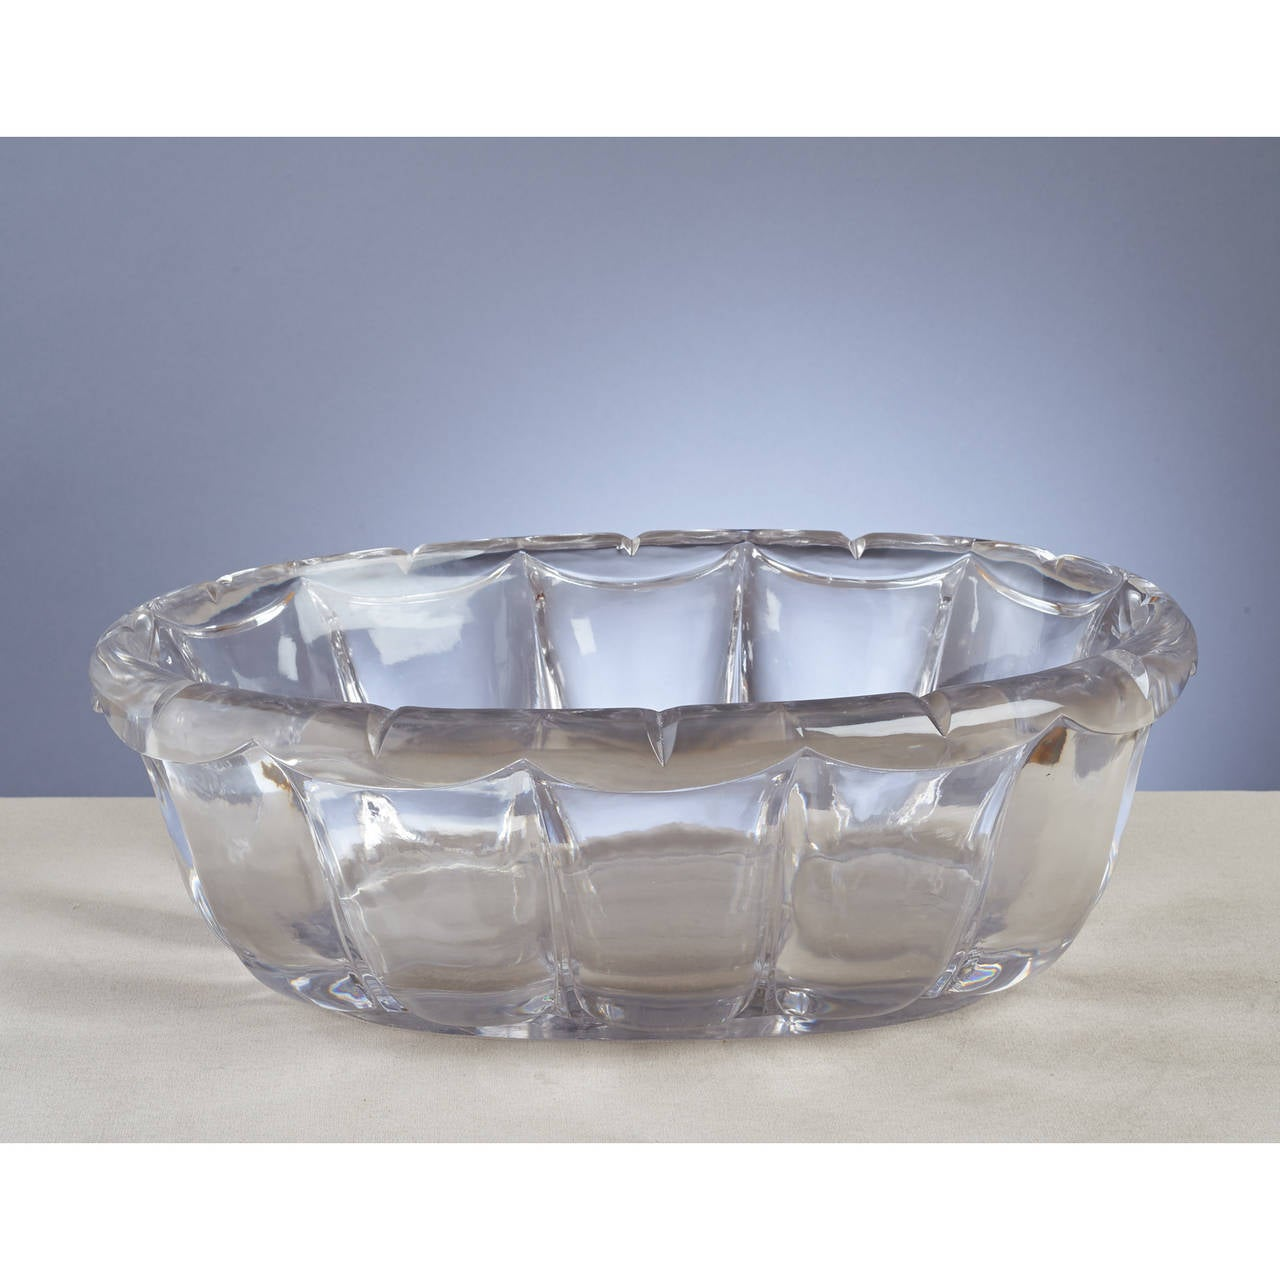 Exceptional sue et mare oval crystal centerpiece s at